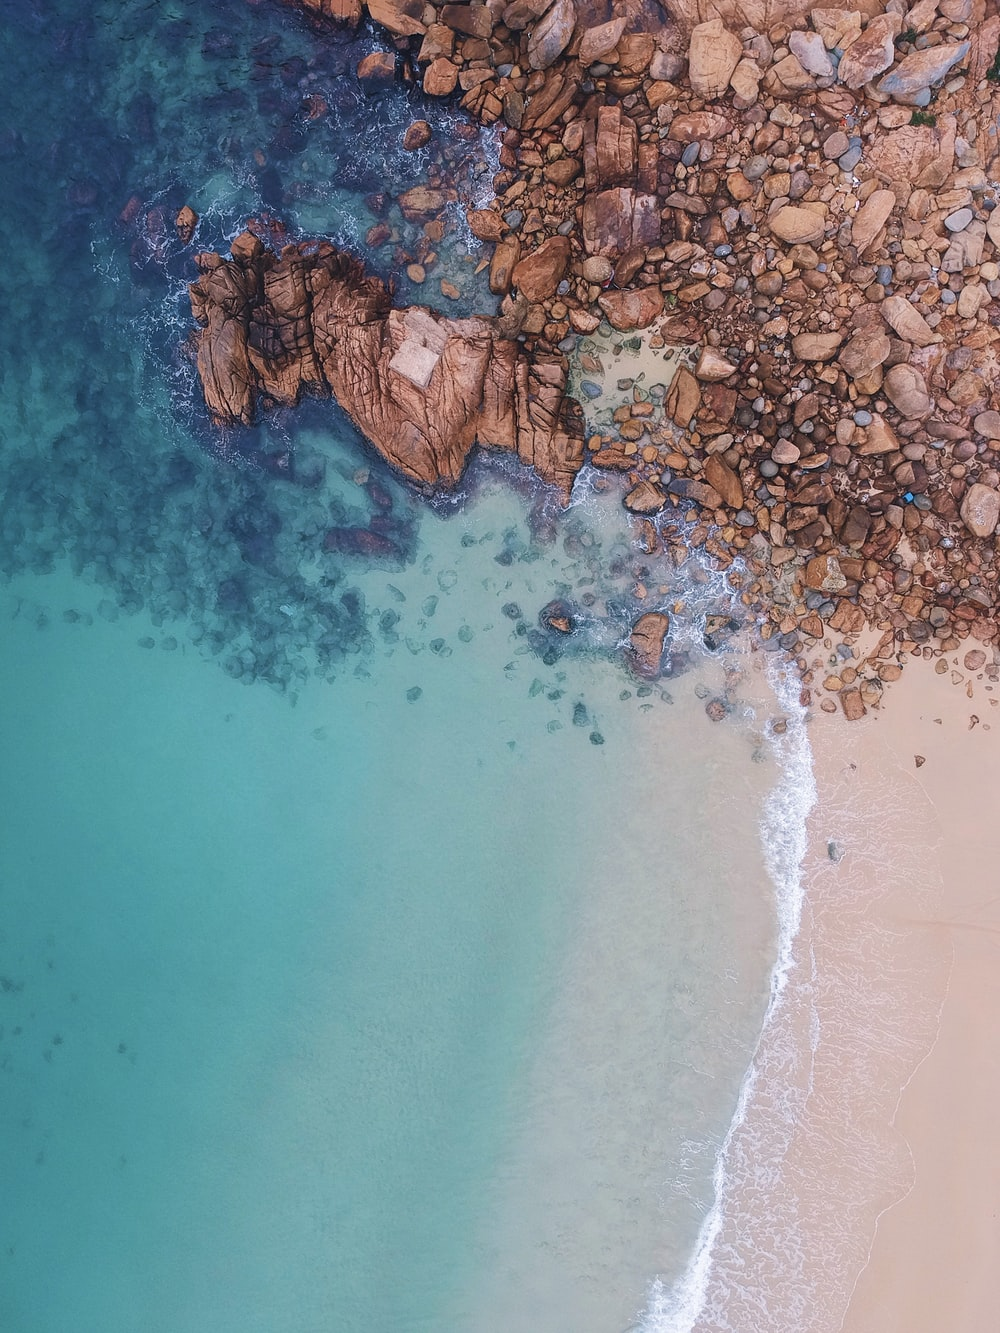 aerial view of rocks near body of water